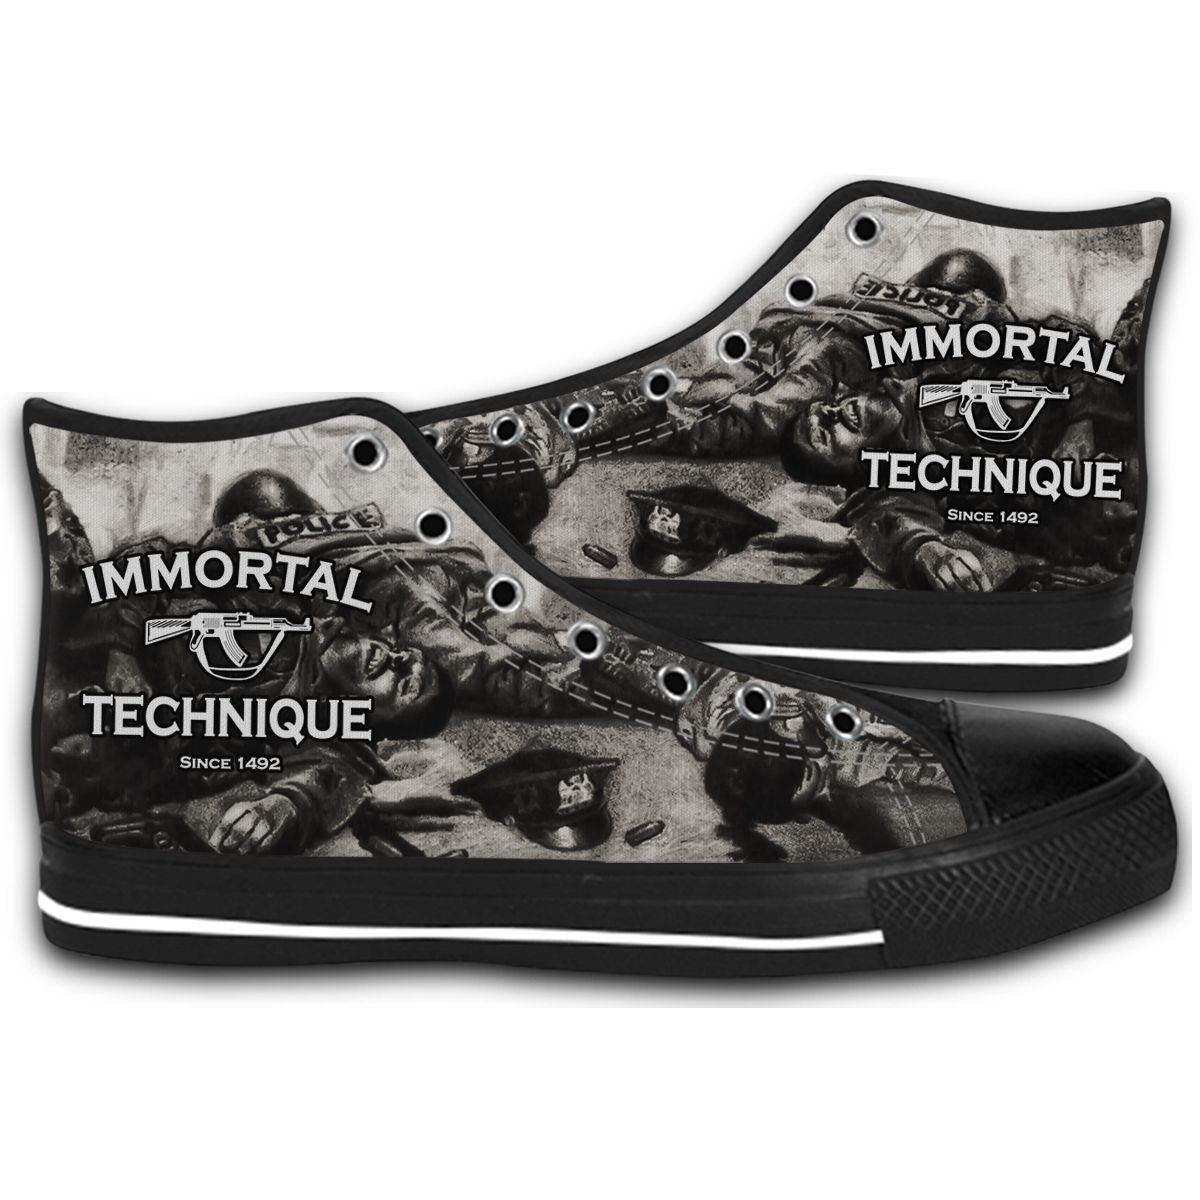 d1f47a0f16ccd Immortal Technique Rock Band Music Logo CANVAS STYLE SHOES FASHION ...